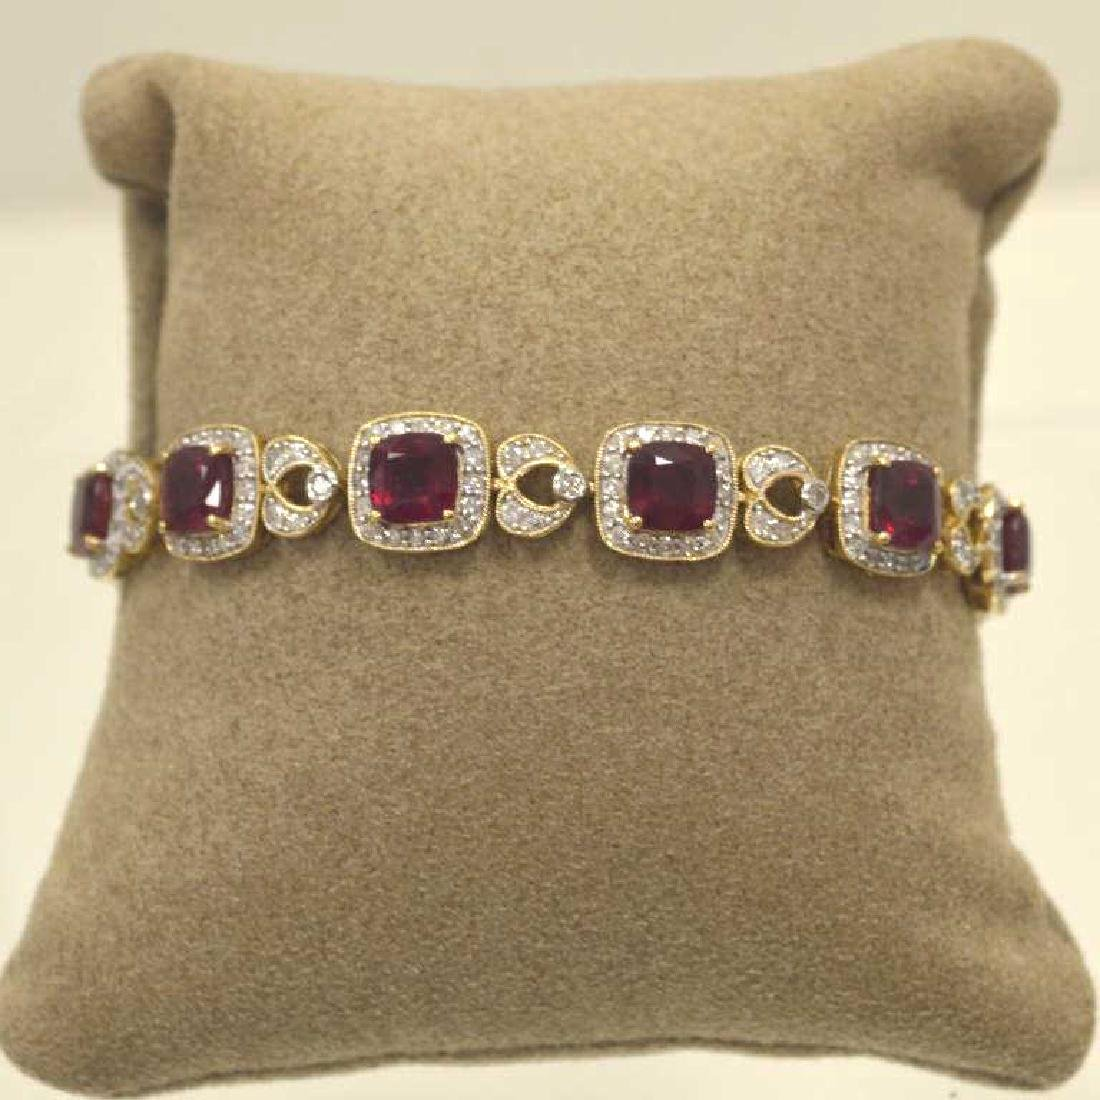 14kt yellow gold ruby and diamond bracelet